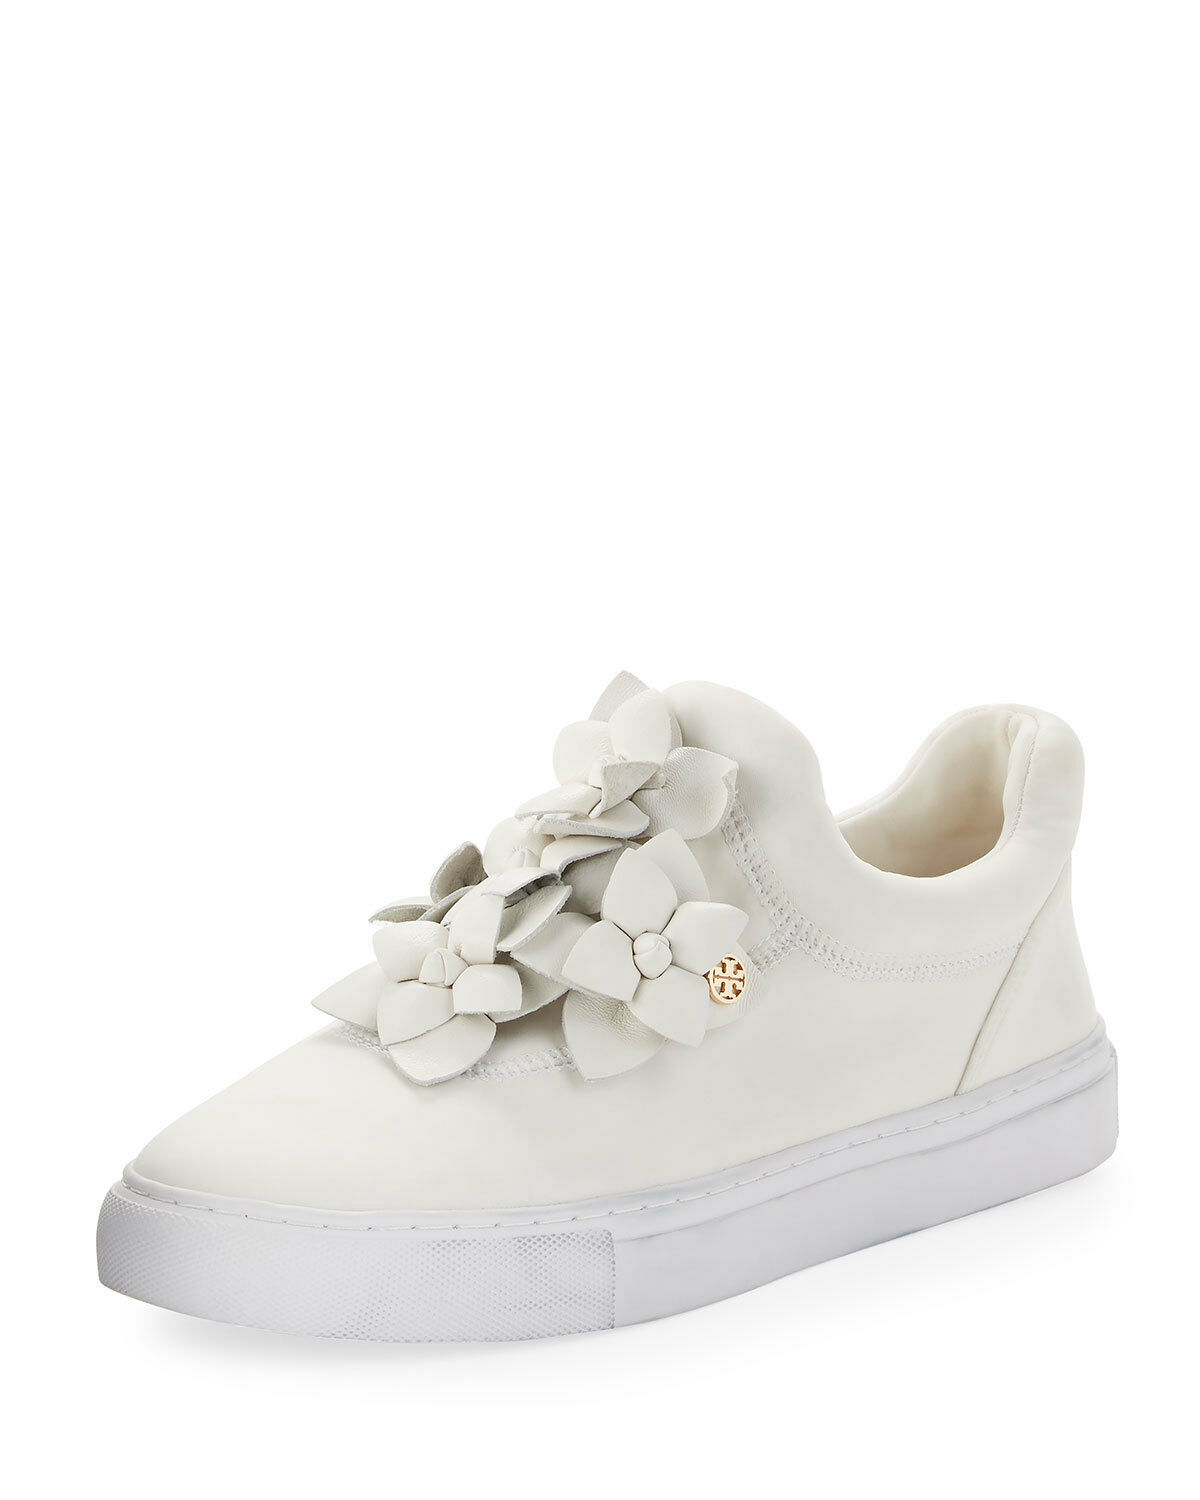 Tory Burch Blossom Neoprene Floral baskets 41 MSRP     270.00 4a7823